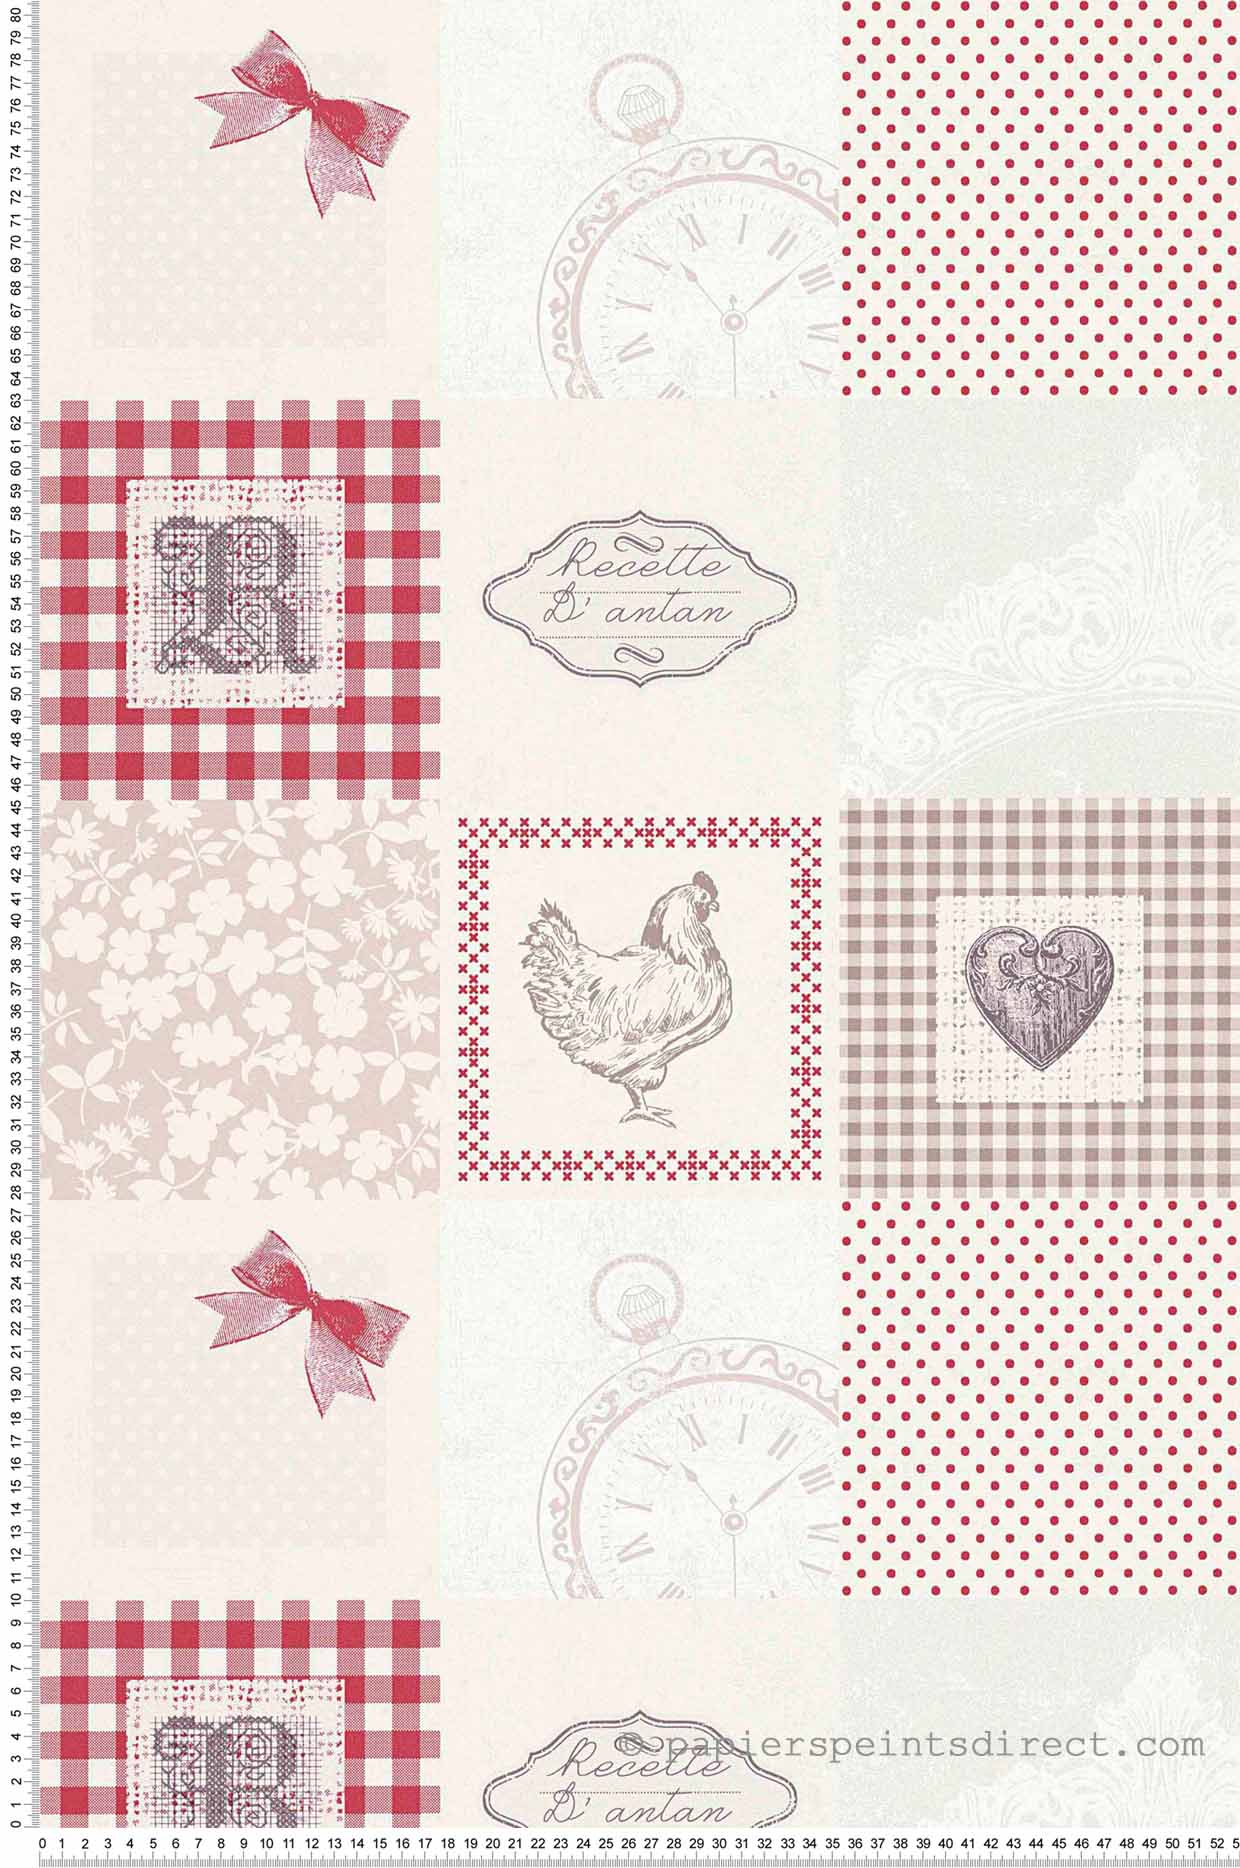 Photo Papier Peint Cuisine papier peint patchwork d'antan rouge - kitchen dreams as